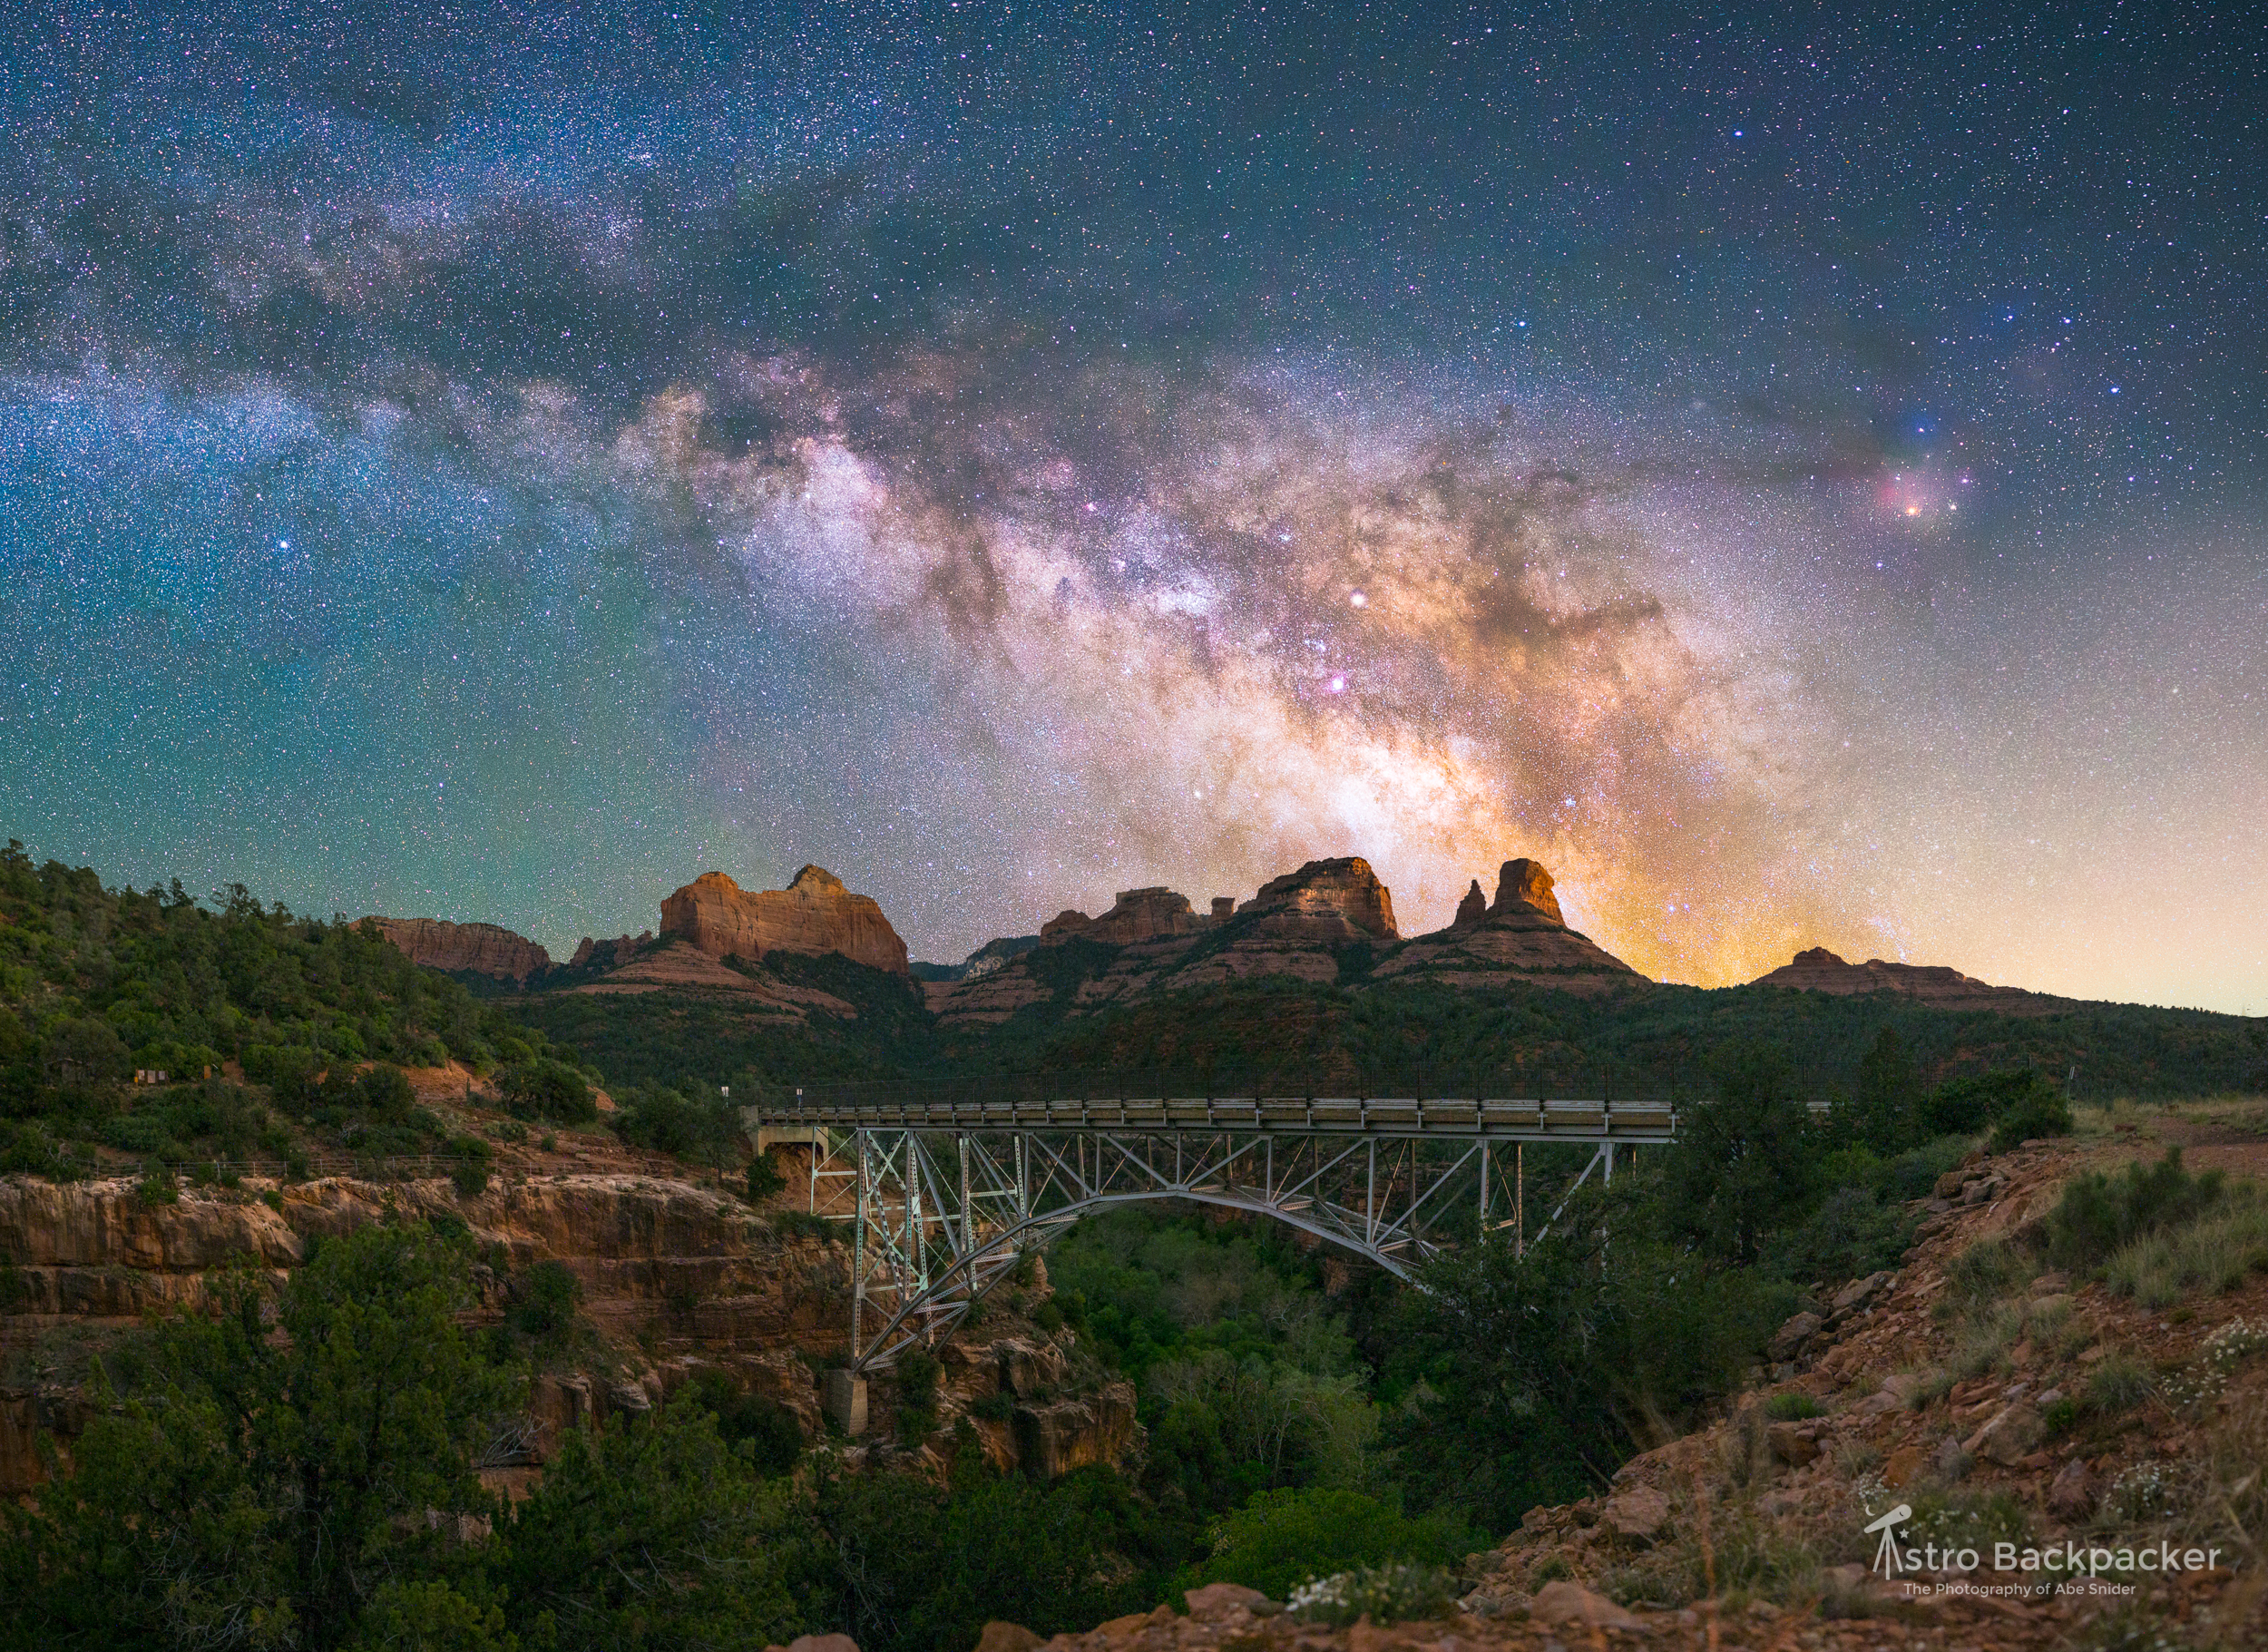 Milky Way & Midgley Bridge (Sedona, Arizona)